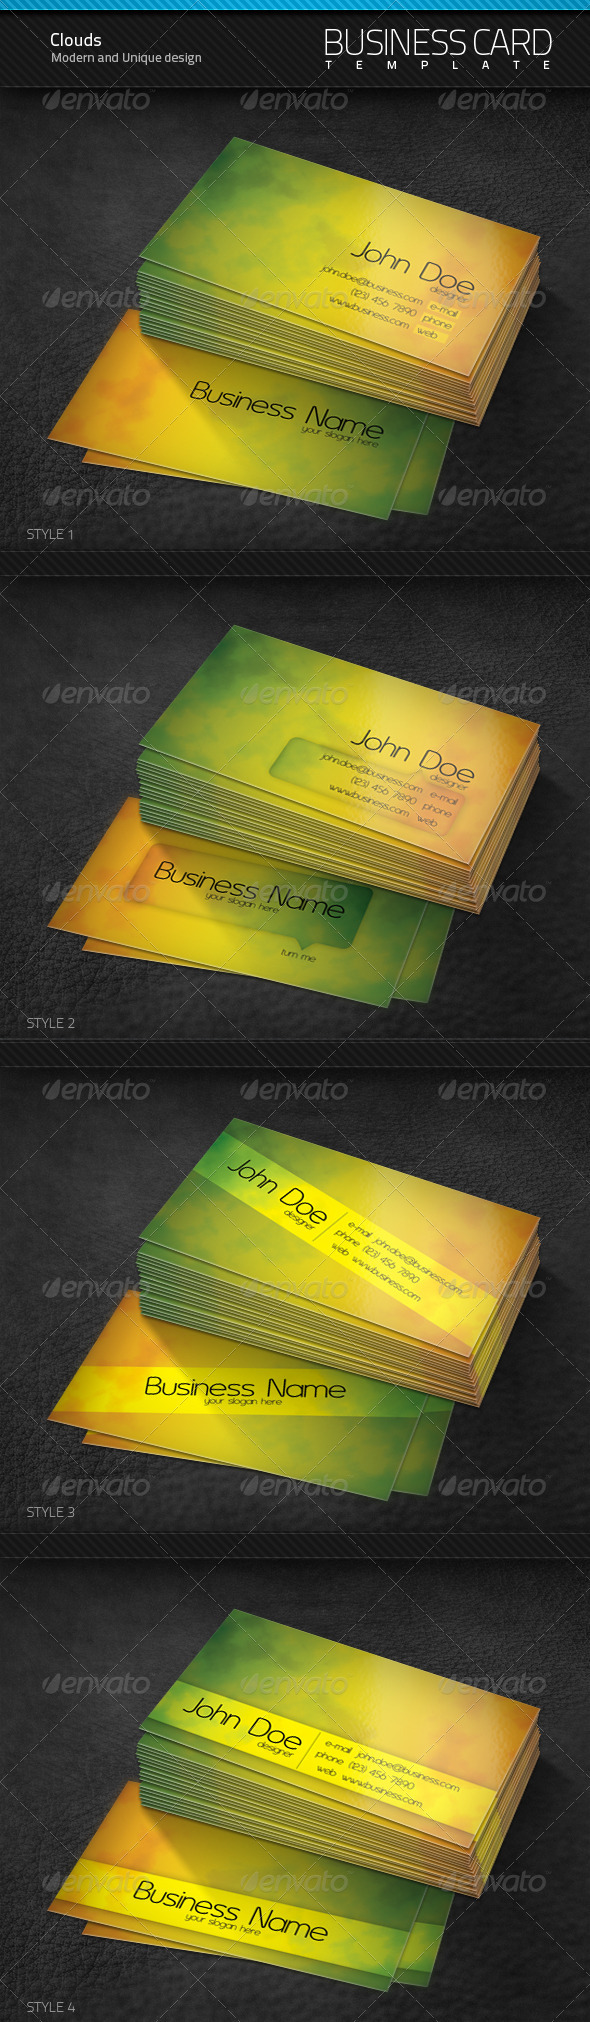 GraphicRiver Cloud Business Cards 106760